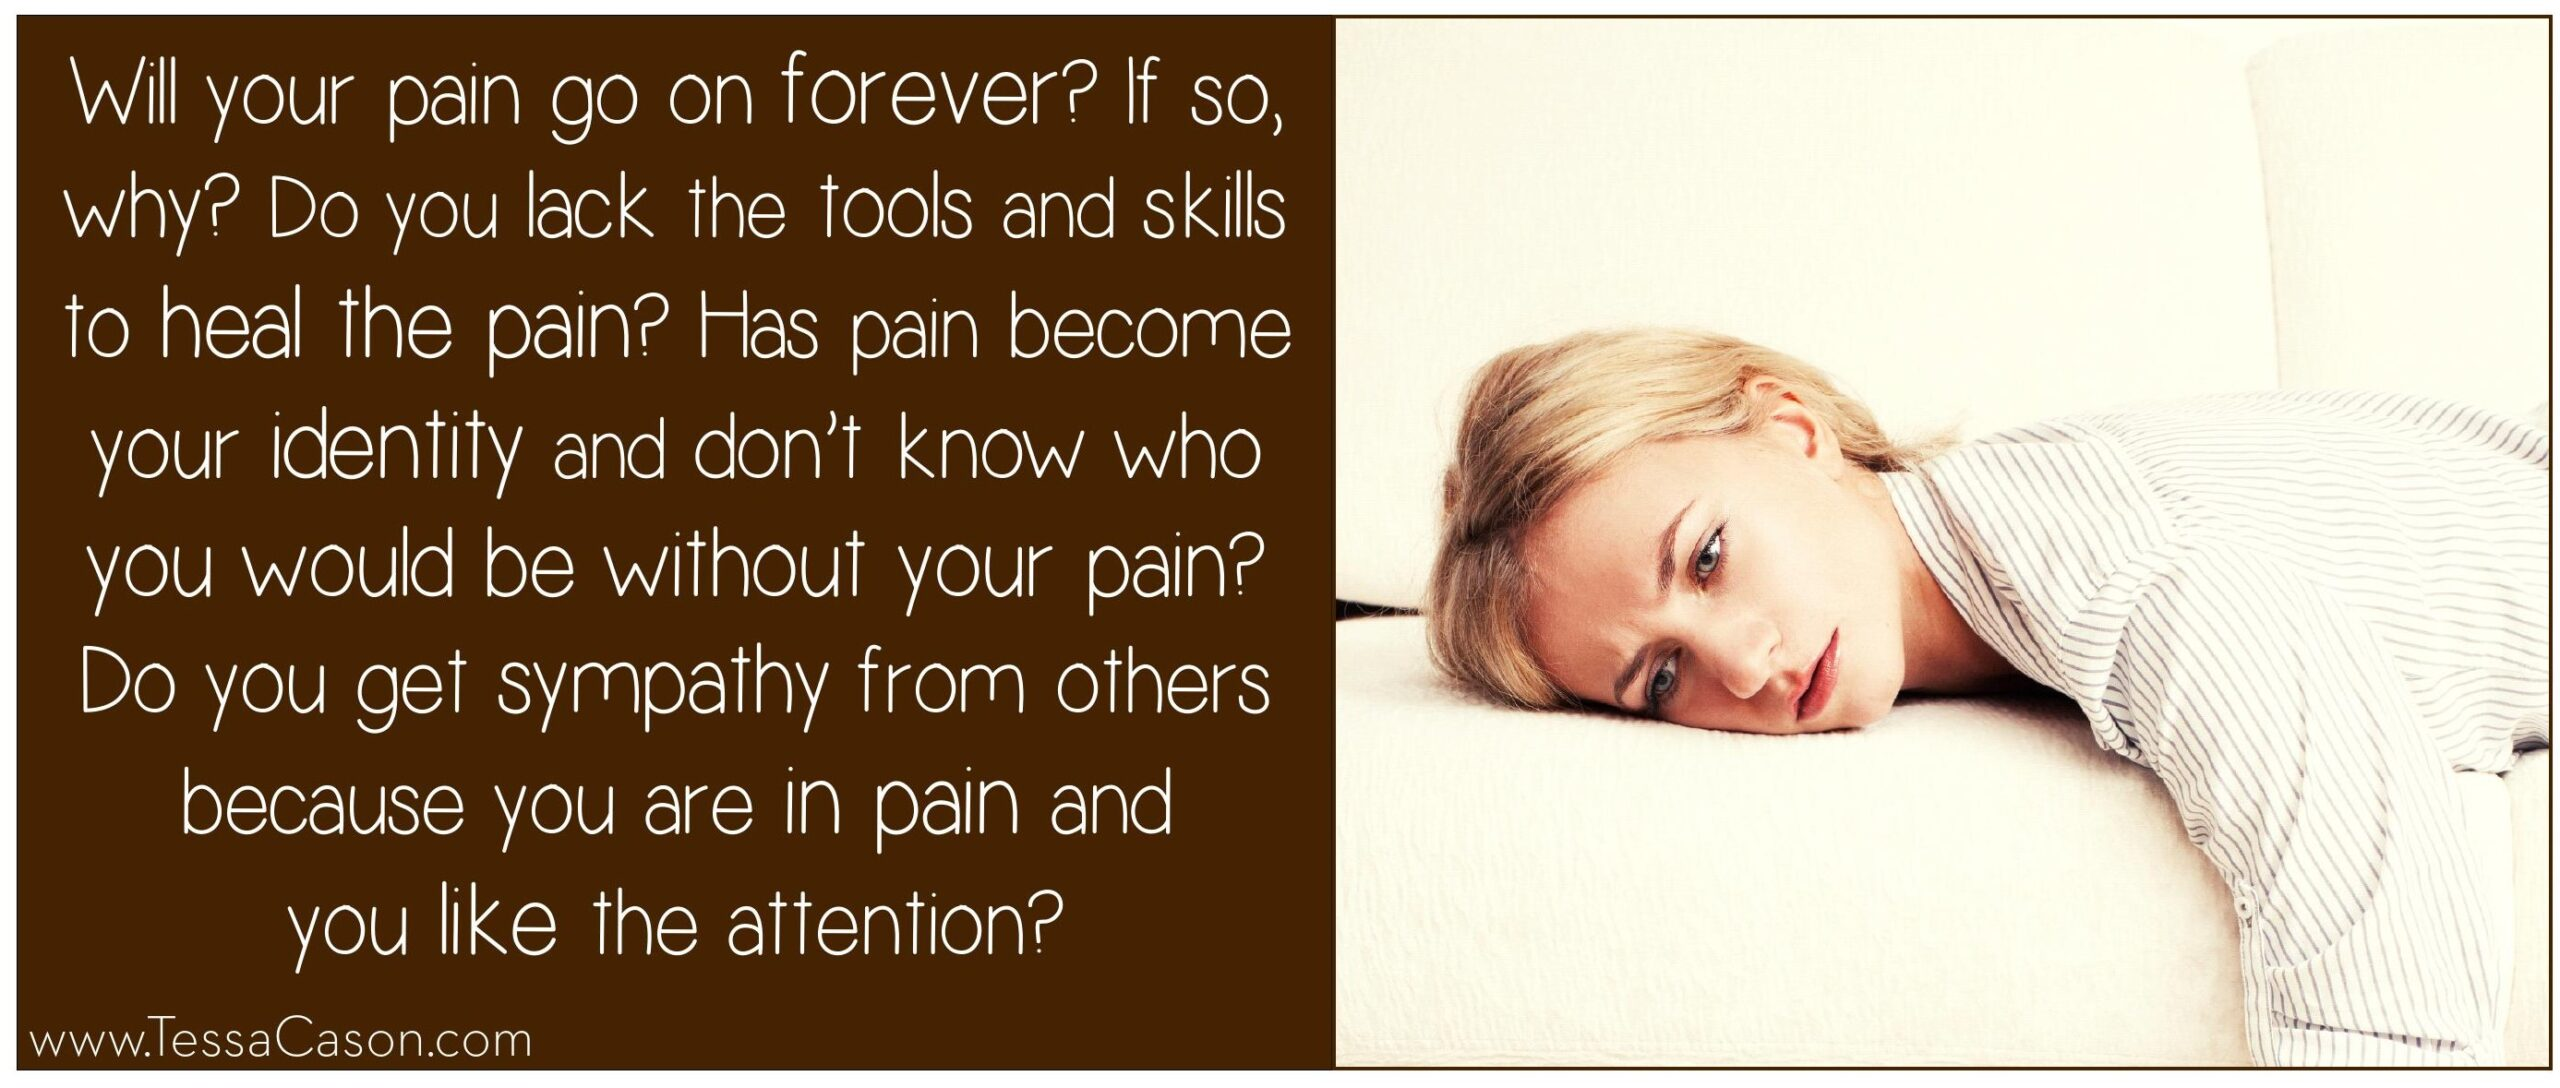 Will your pain go on forever